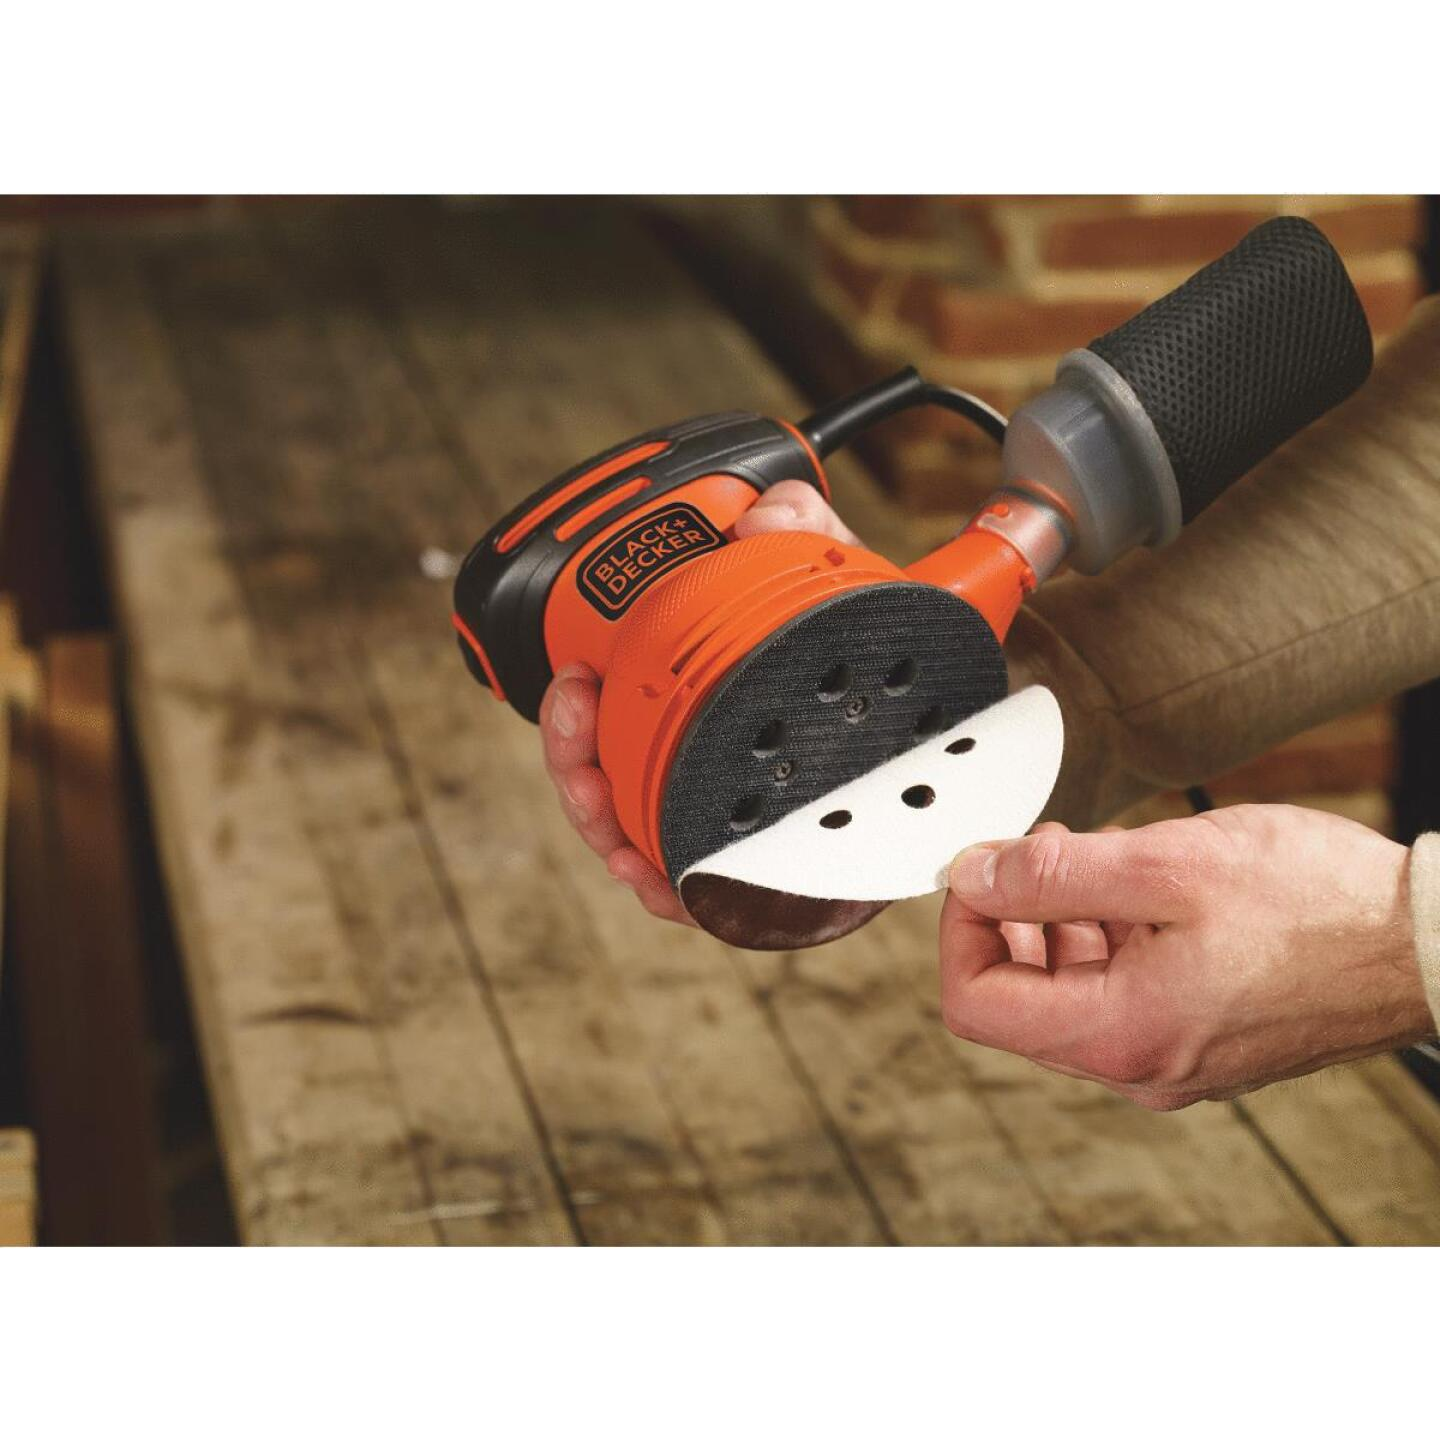 Black & Decker 5 In. 2.0A Random Orbit Finish Sander Image 5